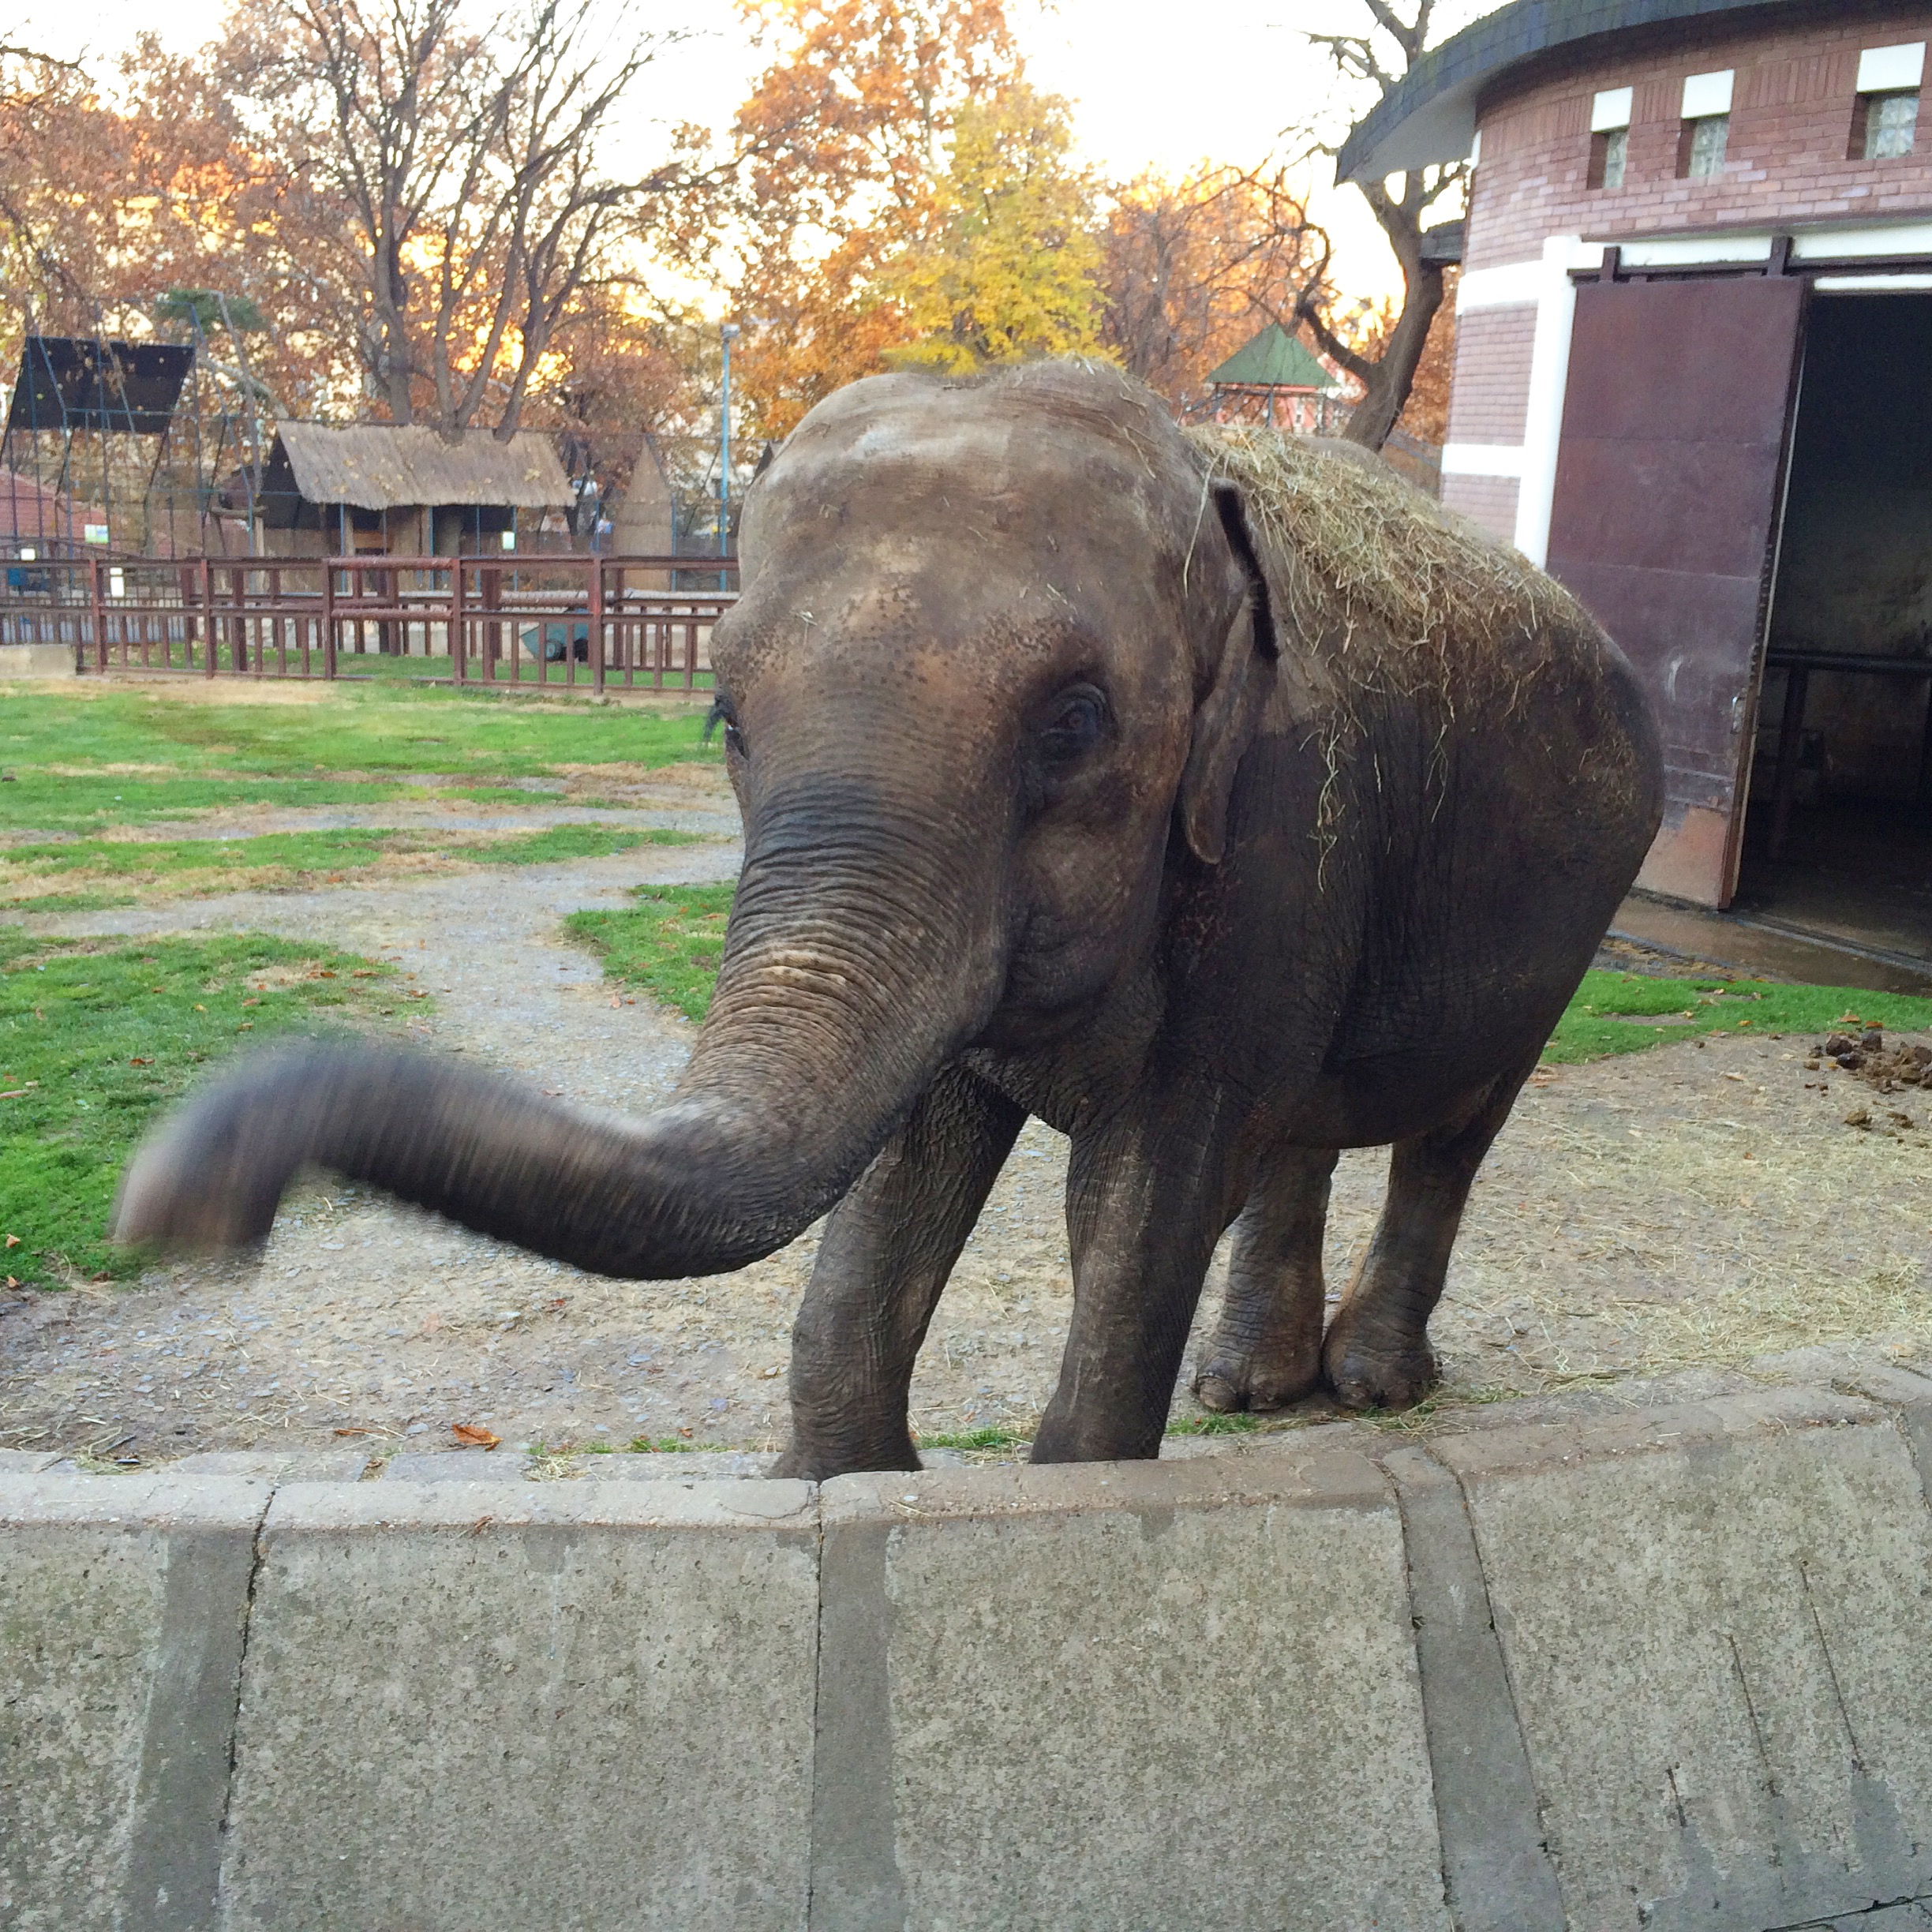 Old pic. But come on. It's an elephant trying to say hi to me.